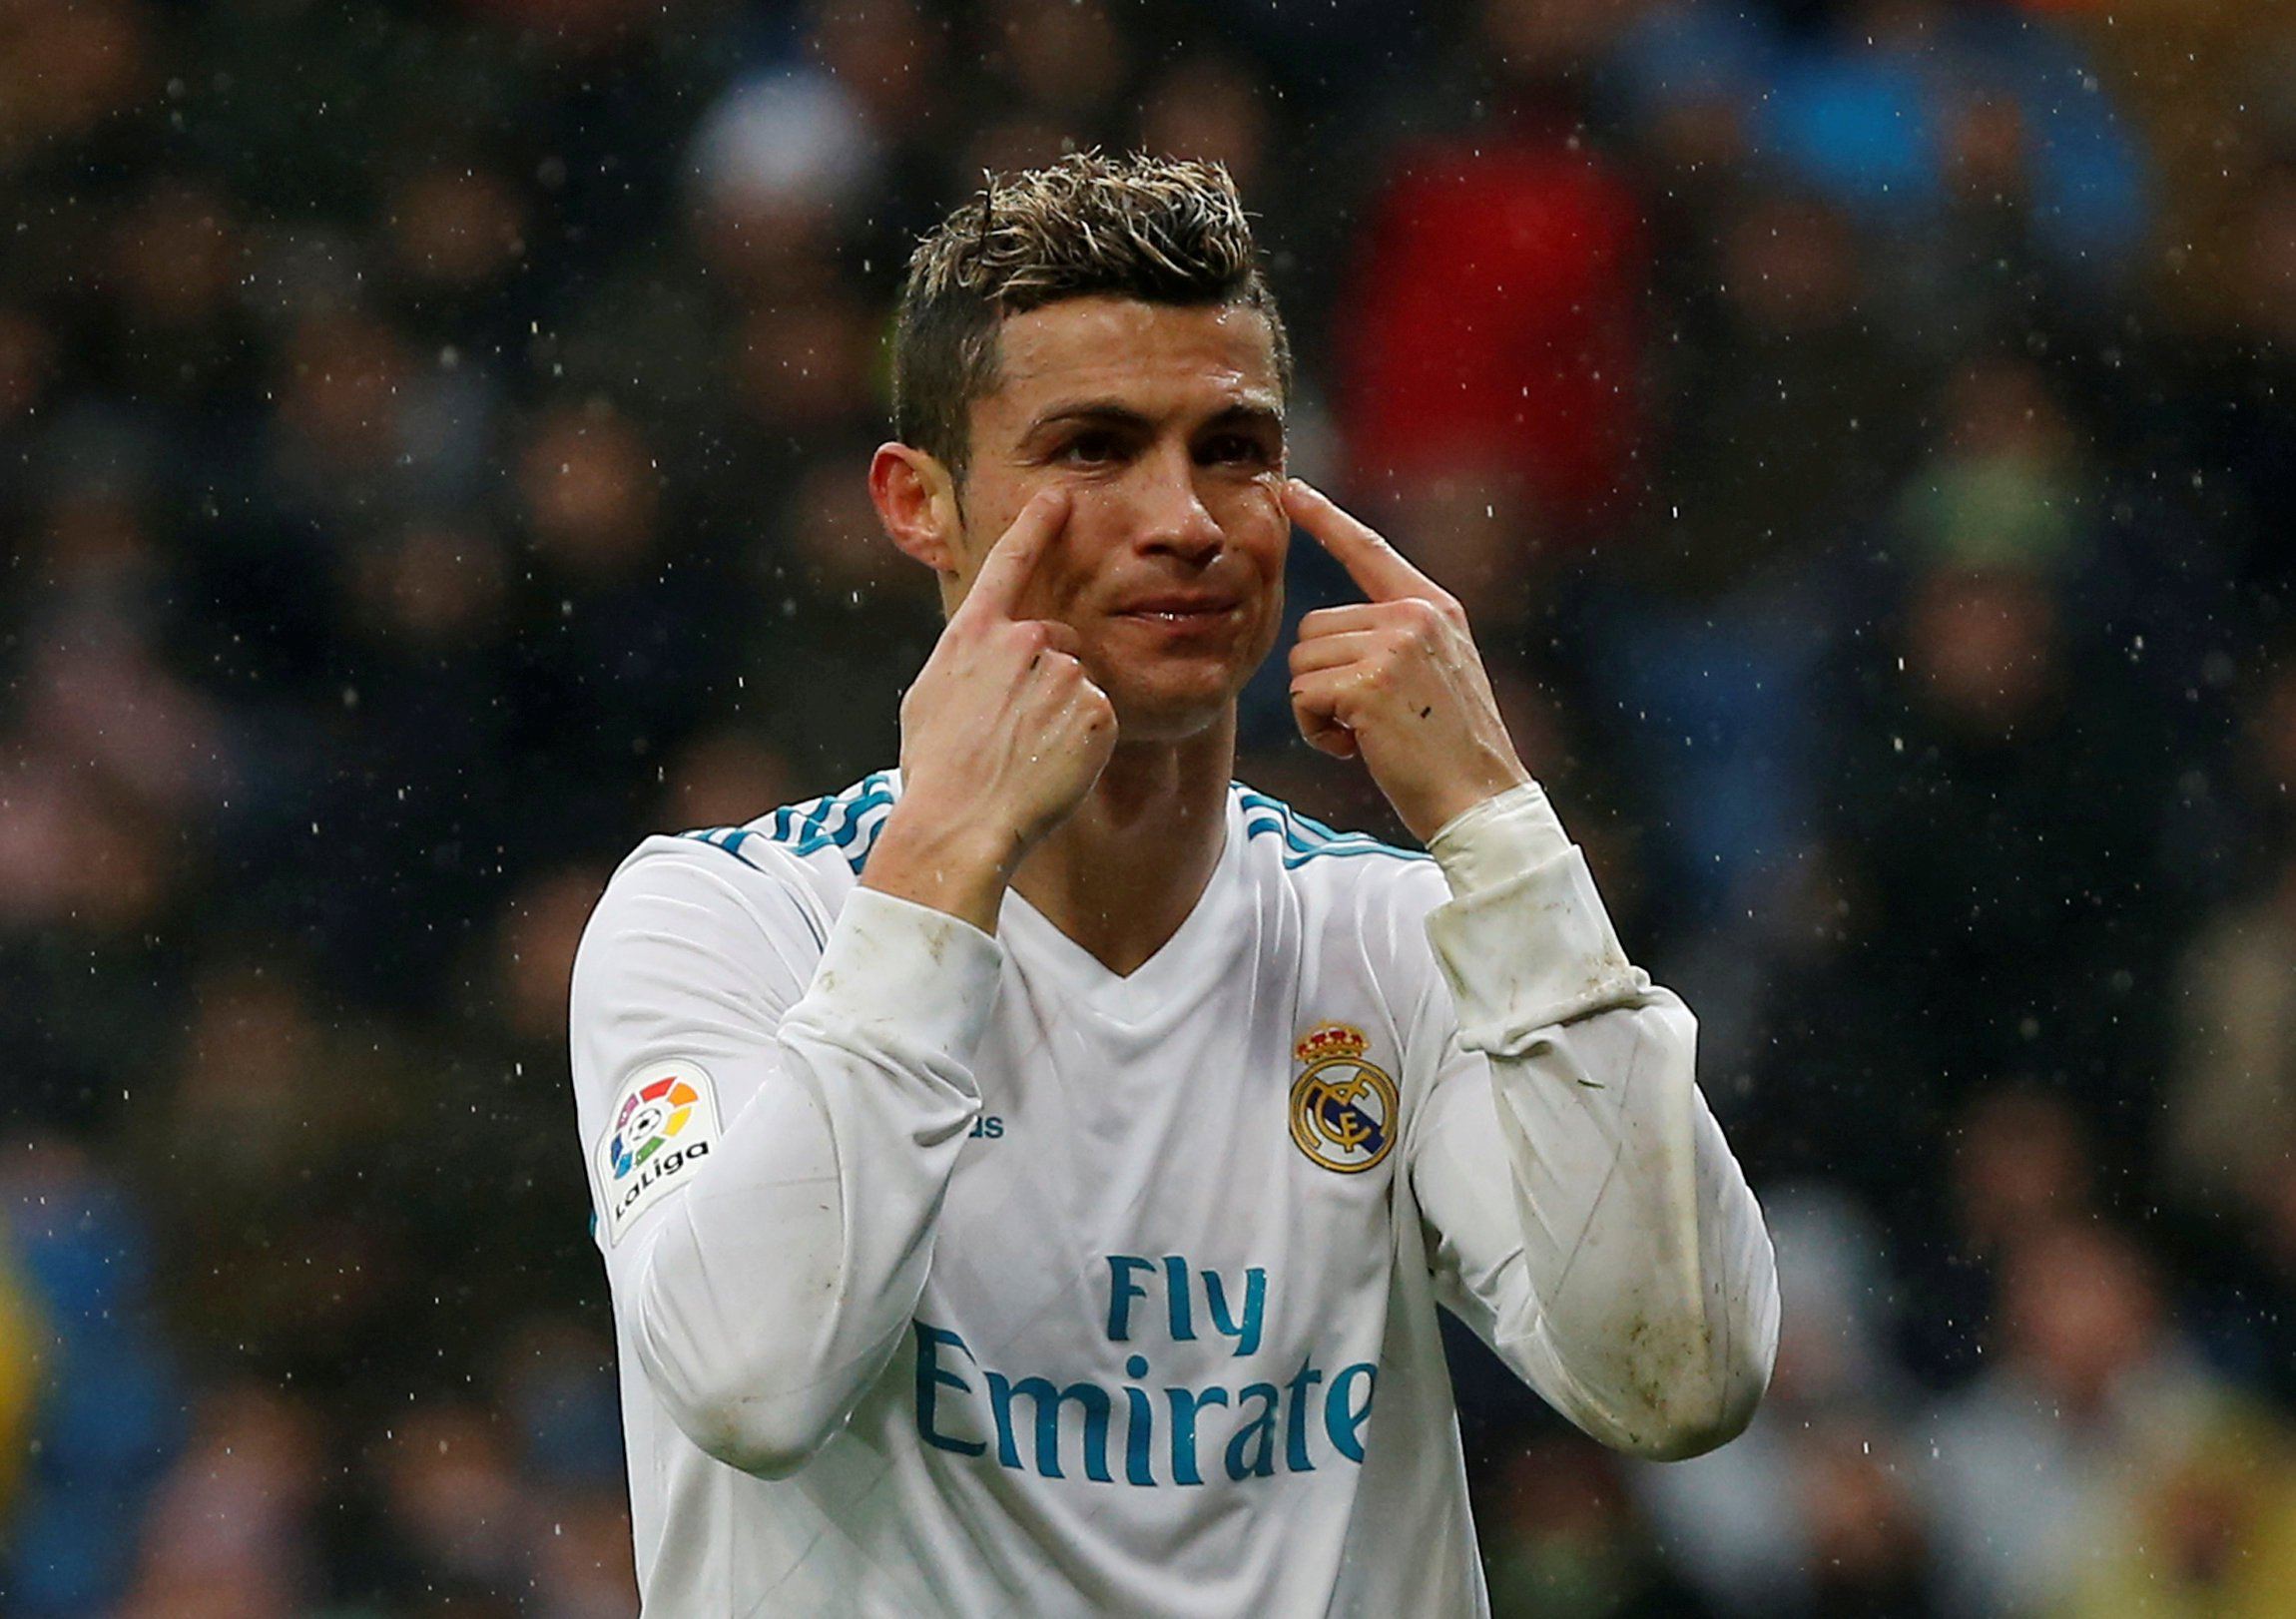 Cristiano Ronaldo open to joining Chelsea in shock transfer from Real Madrid